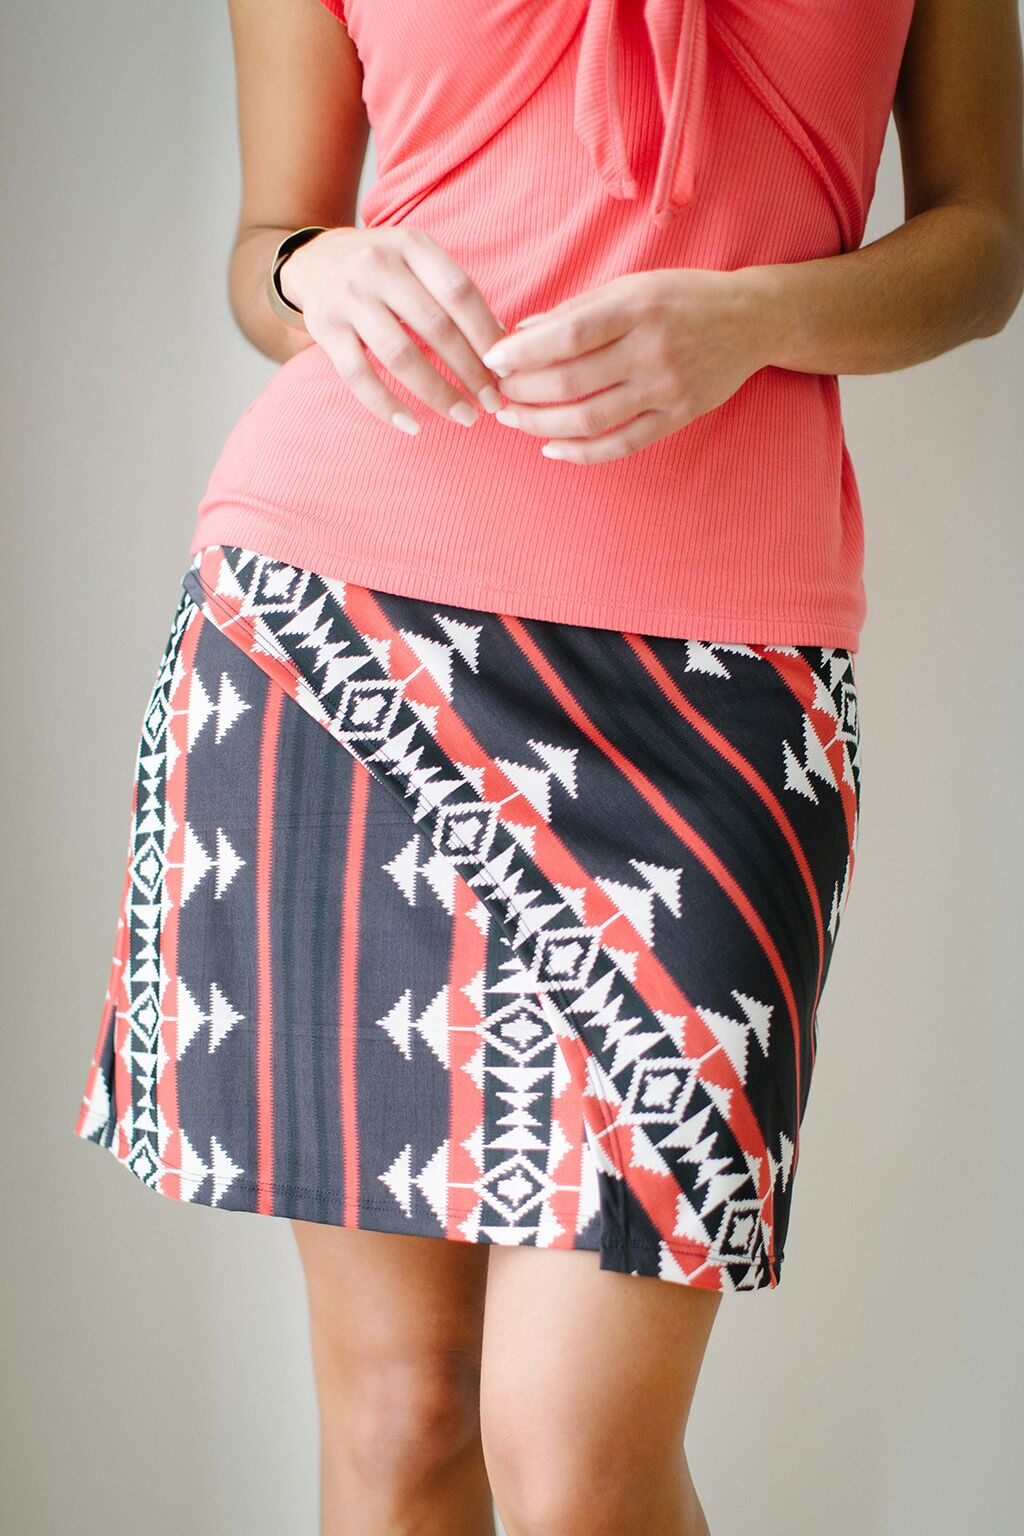 KOKOON Hipster Skirt in Clay Pot